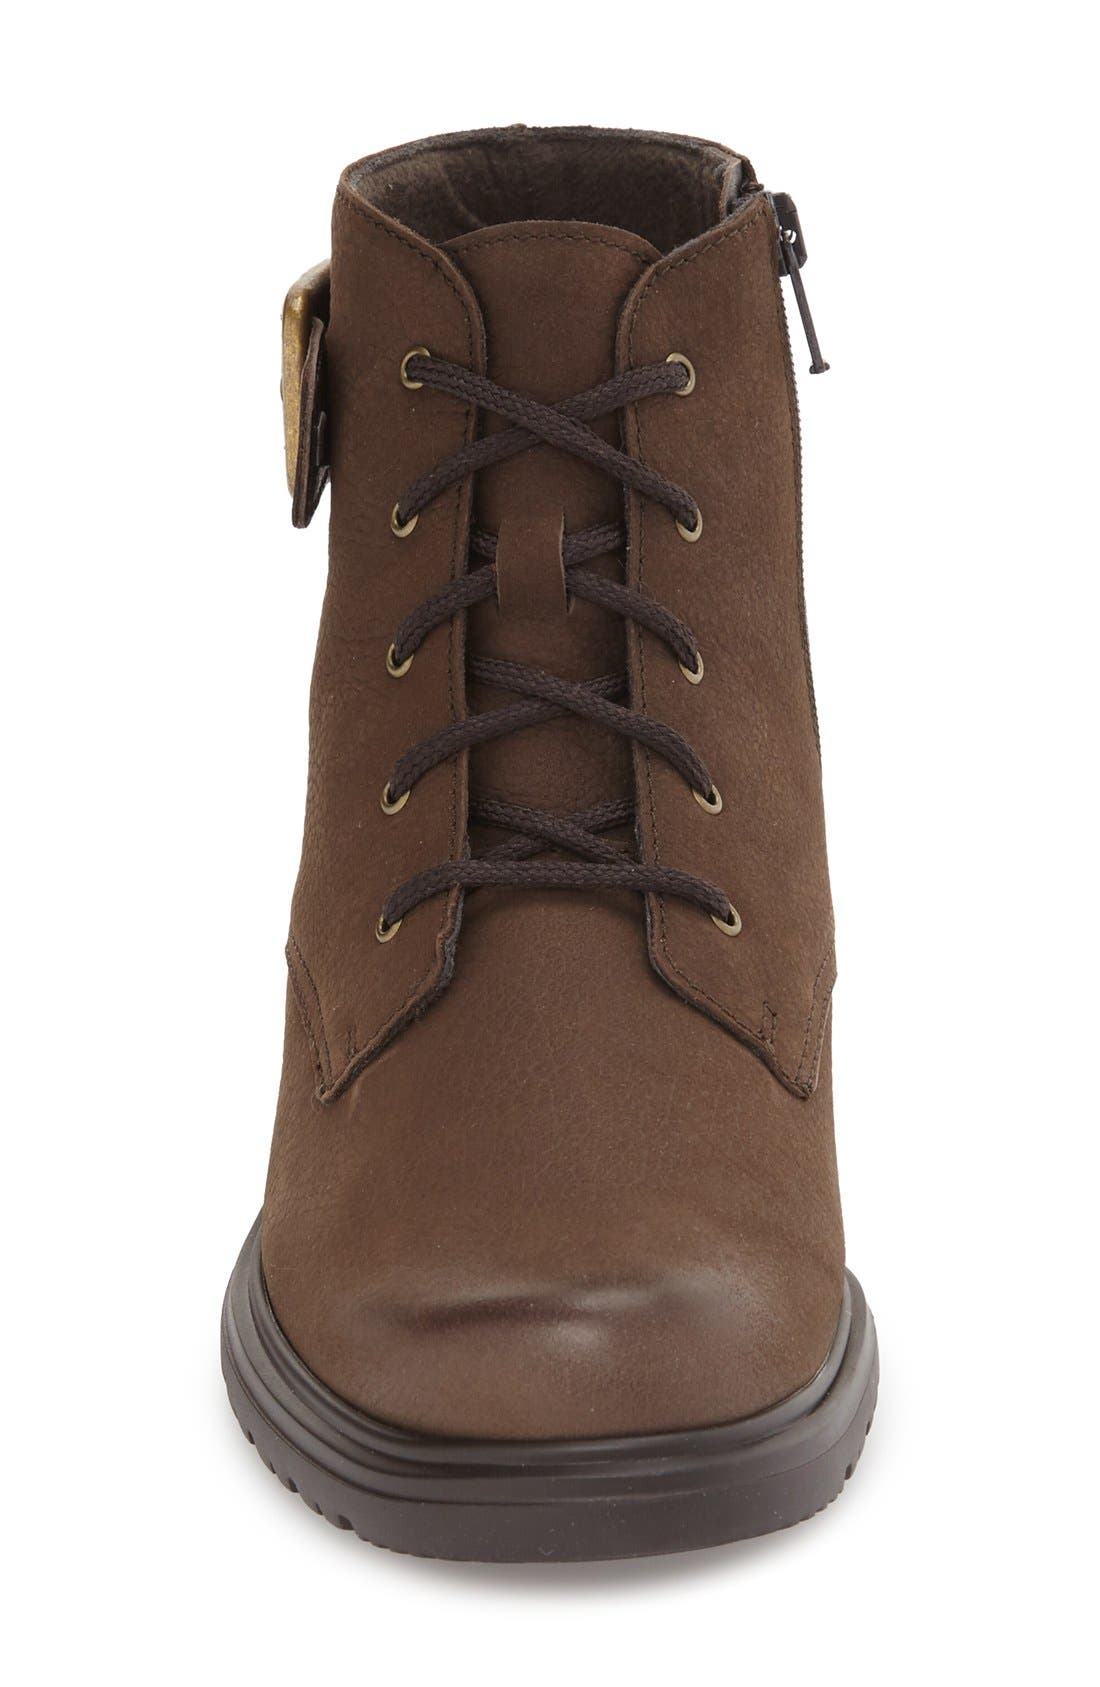 Bradley Water Resistant Boot,                             Alternate thumbnail 3, color,                             Brown Tumbled Nubuck Leather